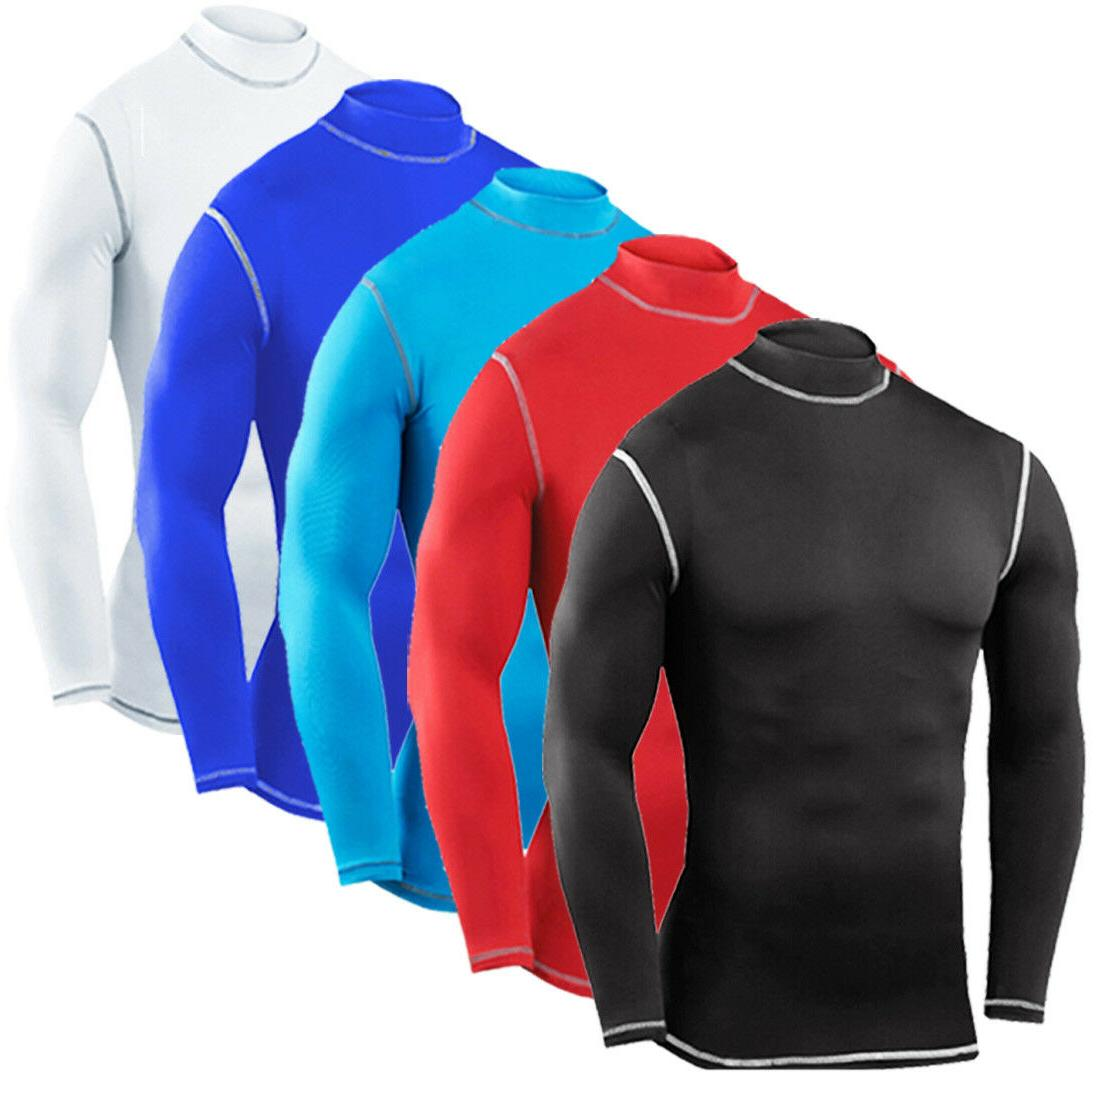 Mens Shirt Sleeve Top Gym Workout Clothes